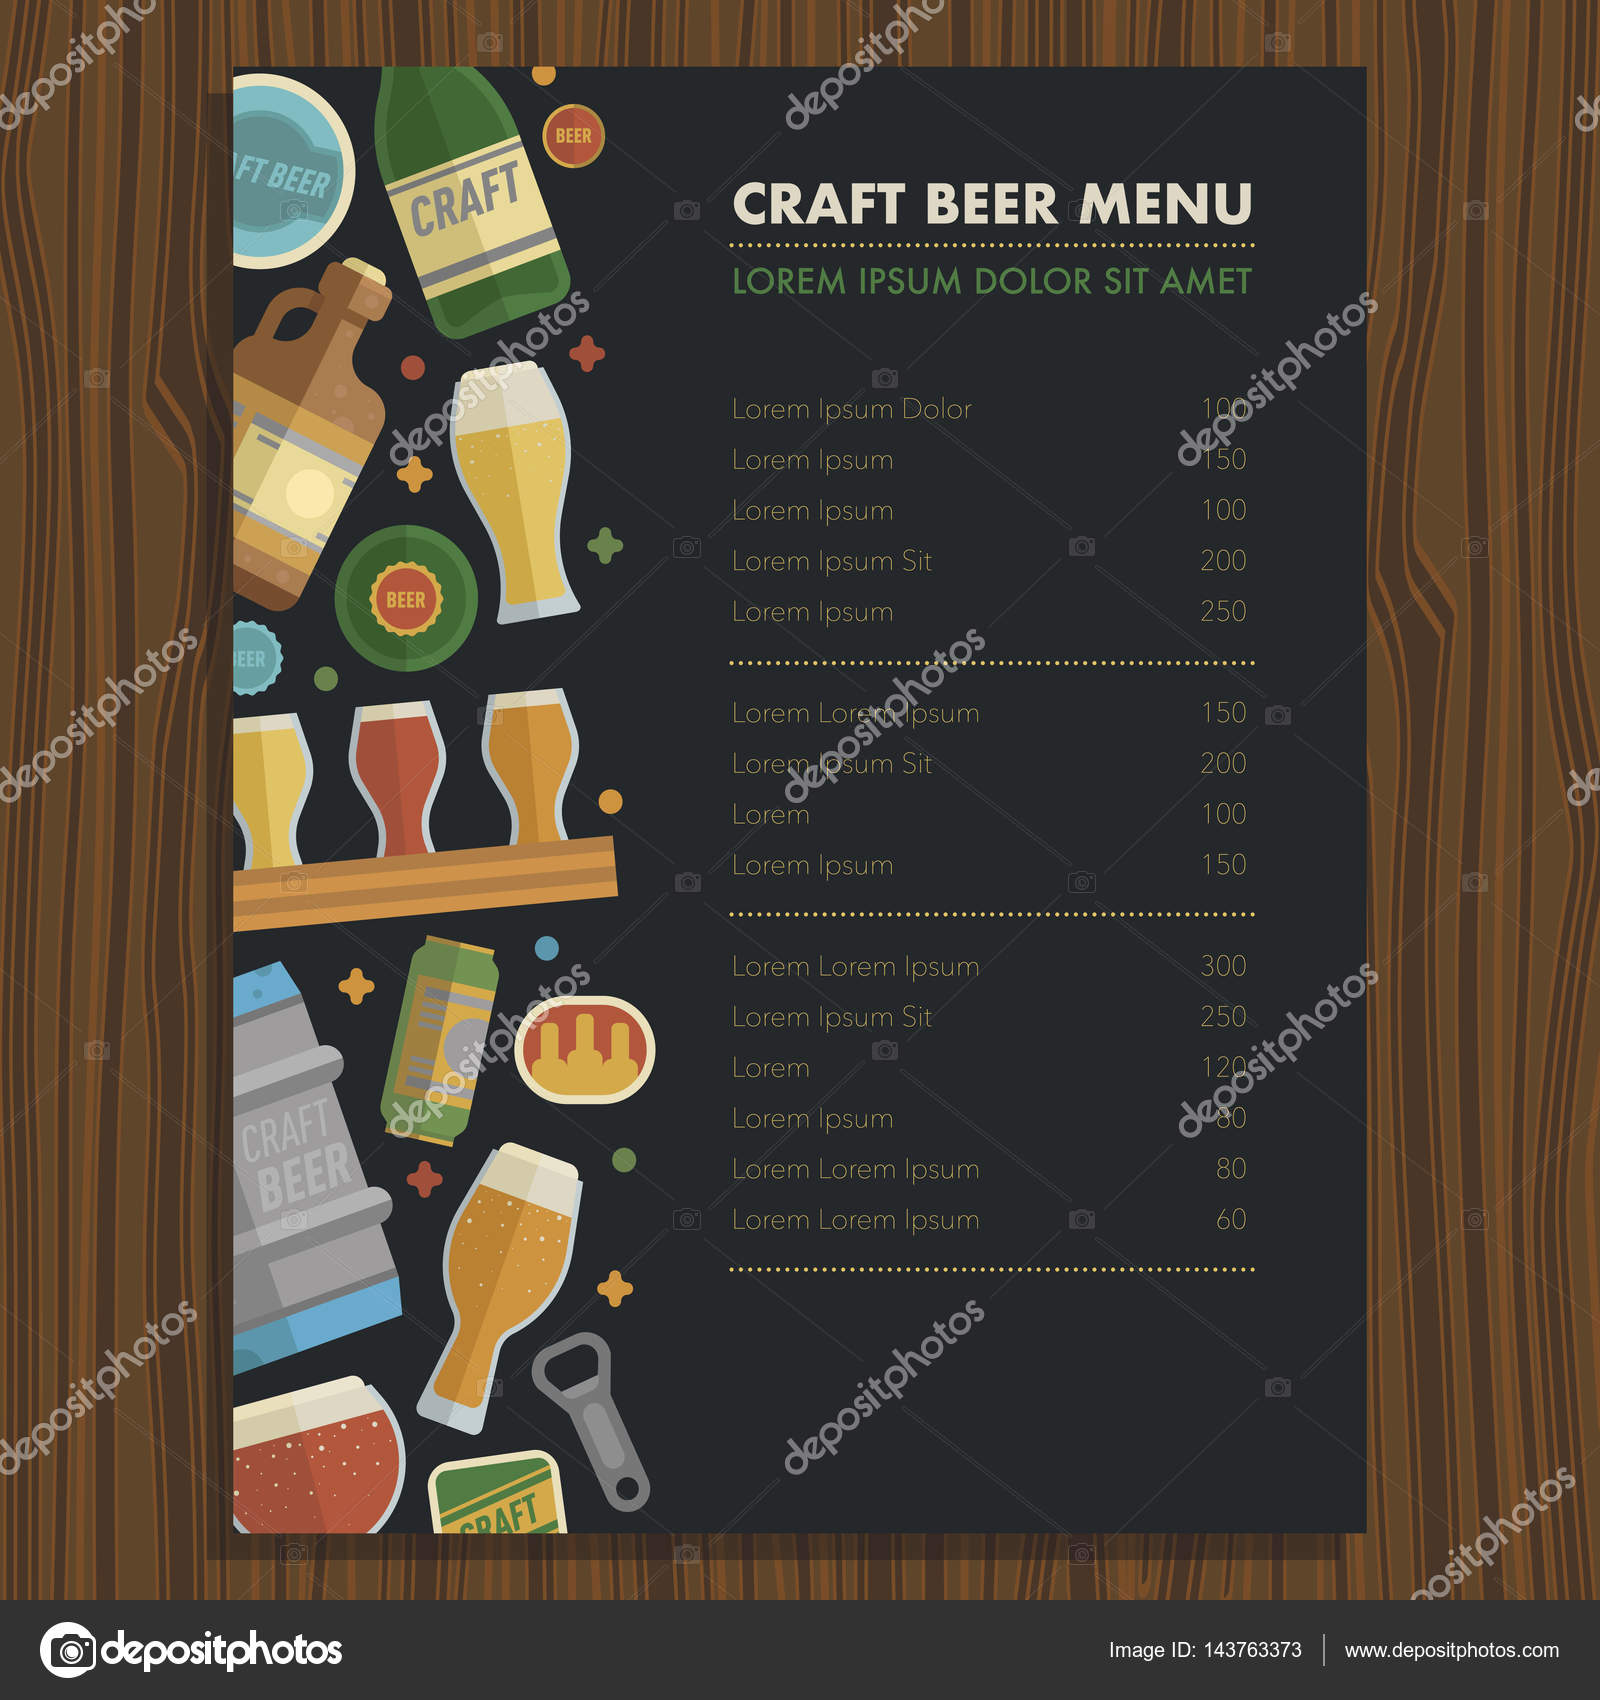 Craft Beer Menu Template For Bar And Restaraunt Stock Vector